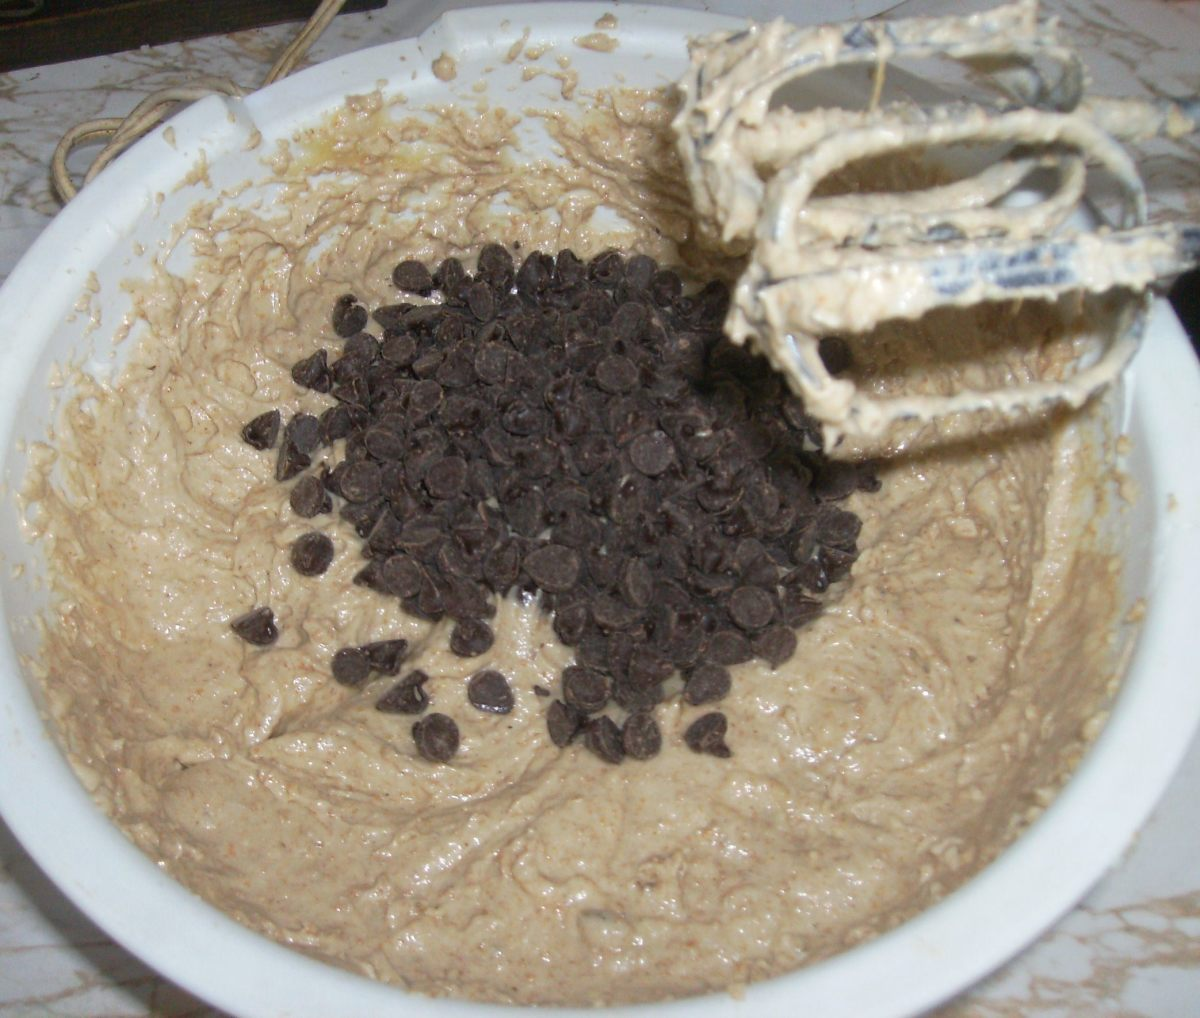 I love adding chocolate chips!